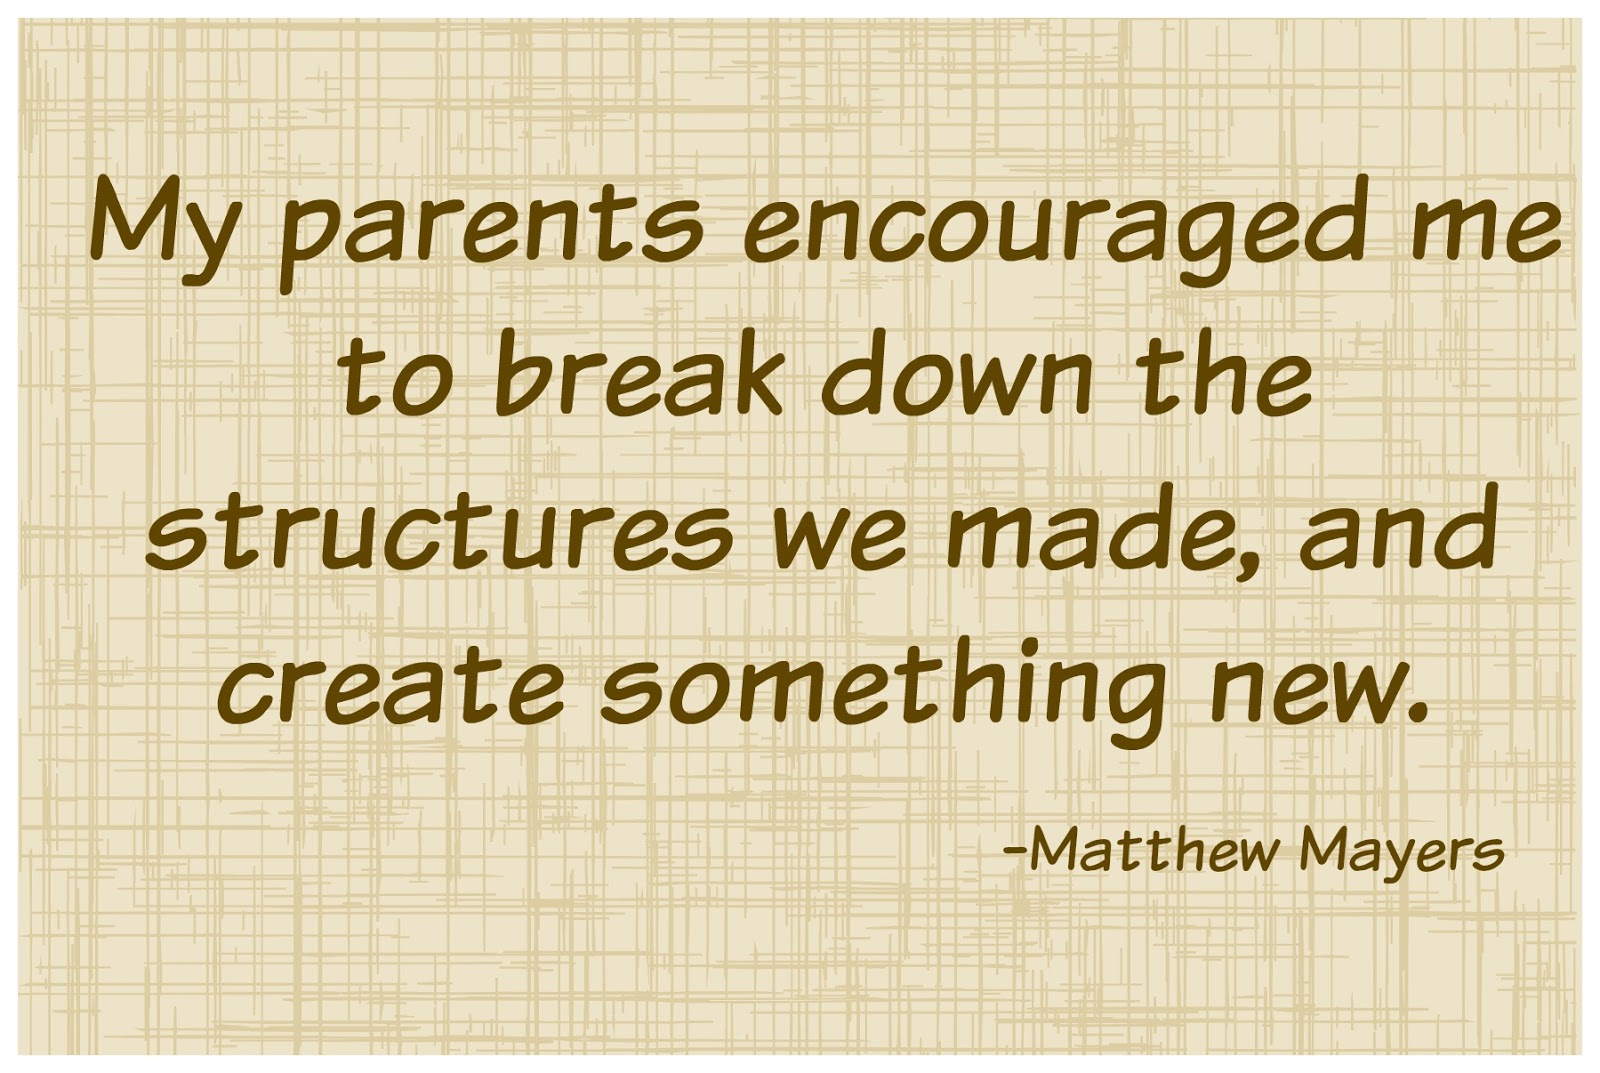 A sweet quote about parental encouragement: break down the structures to create something new. can truly be applied to any difficult situation